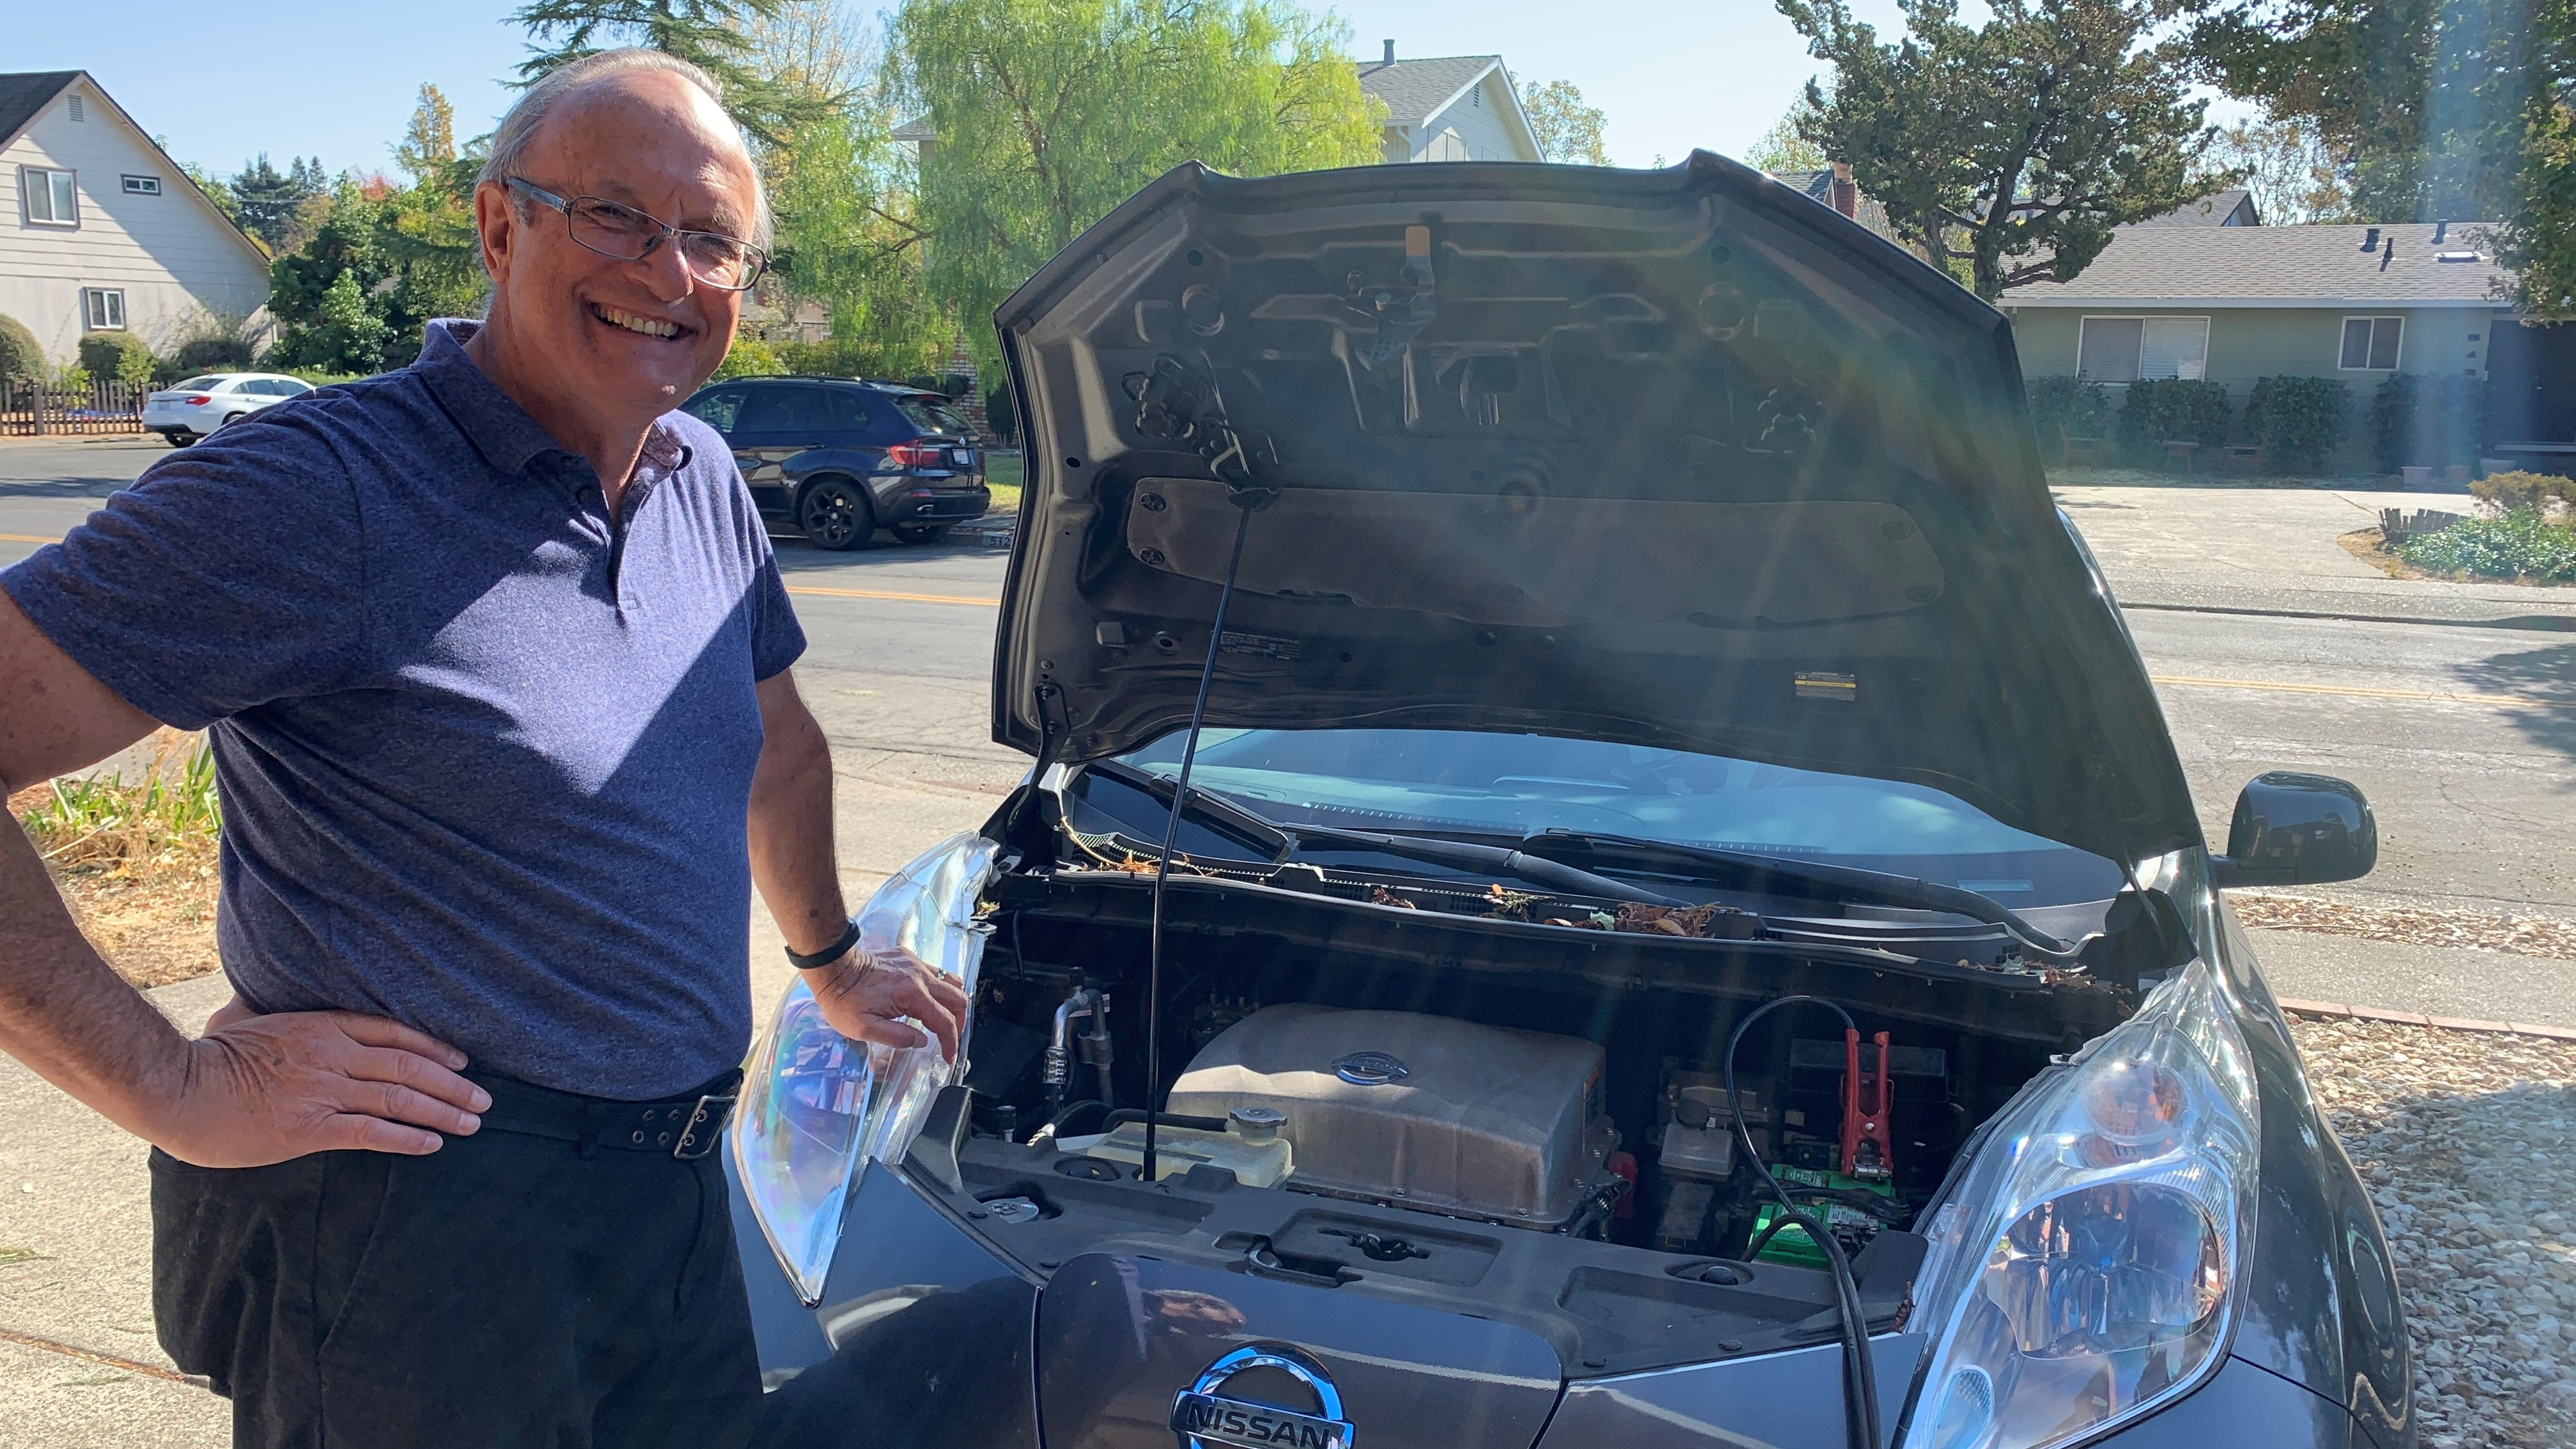 Clarence Dold used his 2013 Nissan Leaf to power his house during a four-day blackout in Santa Rosa, Calif., as a result of the Kincade Fire.